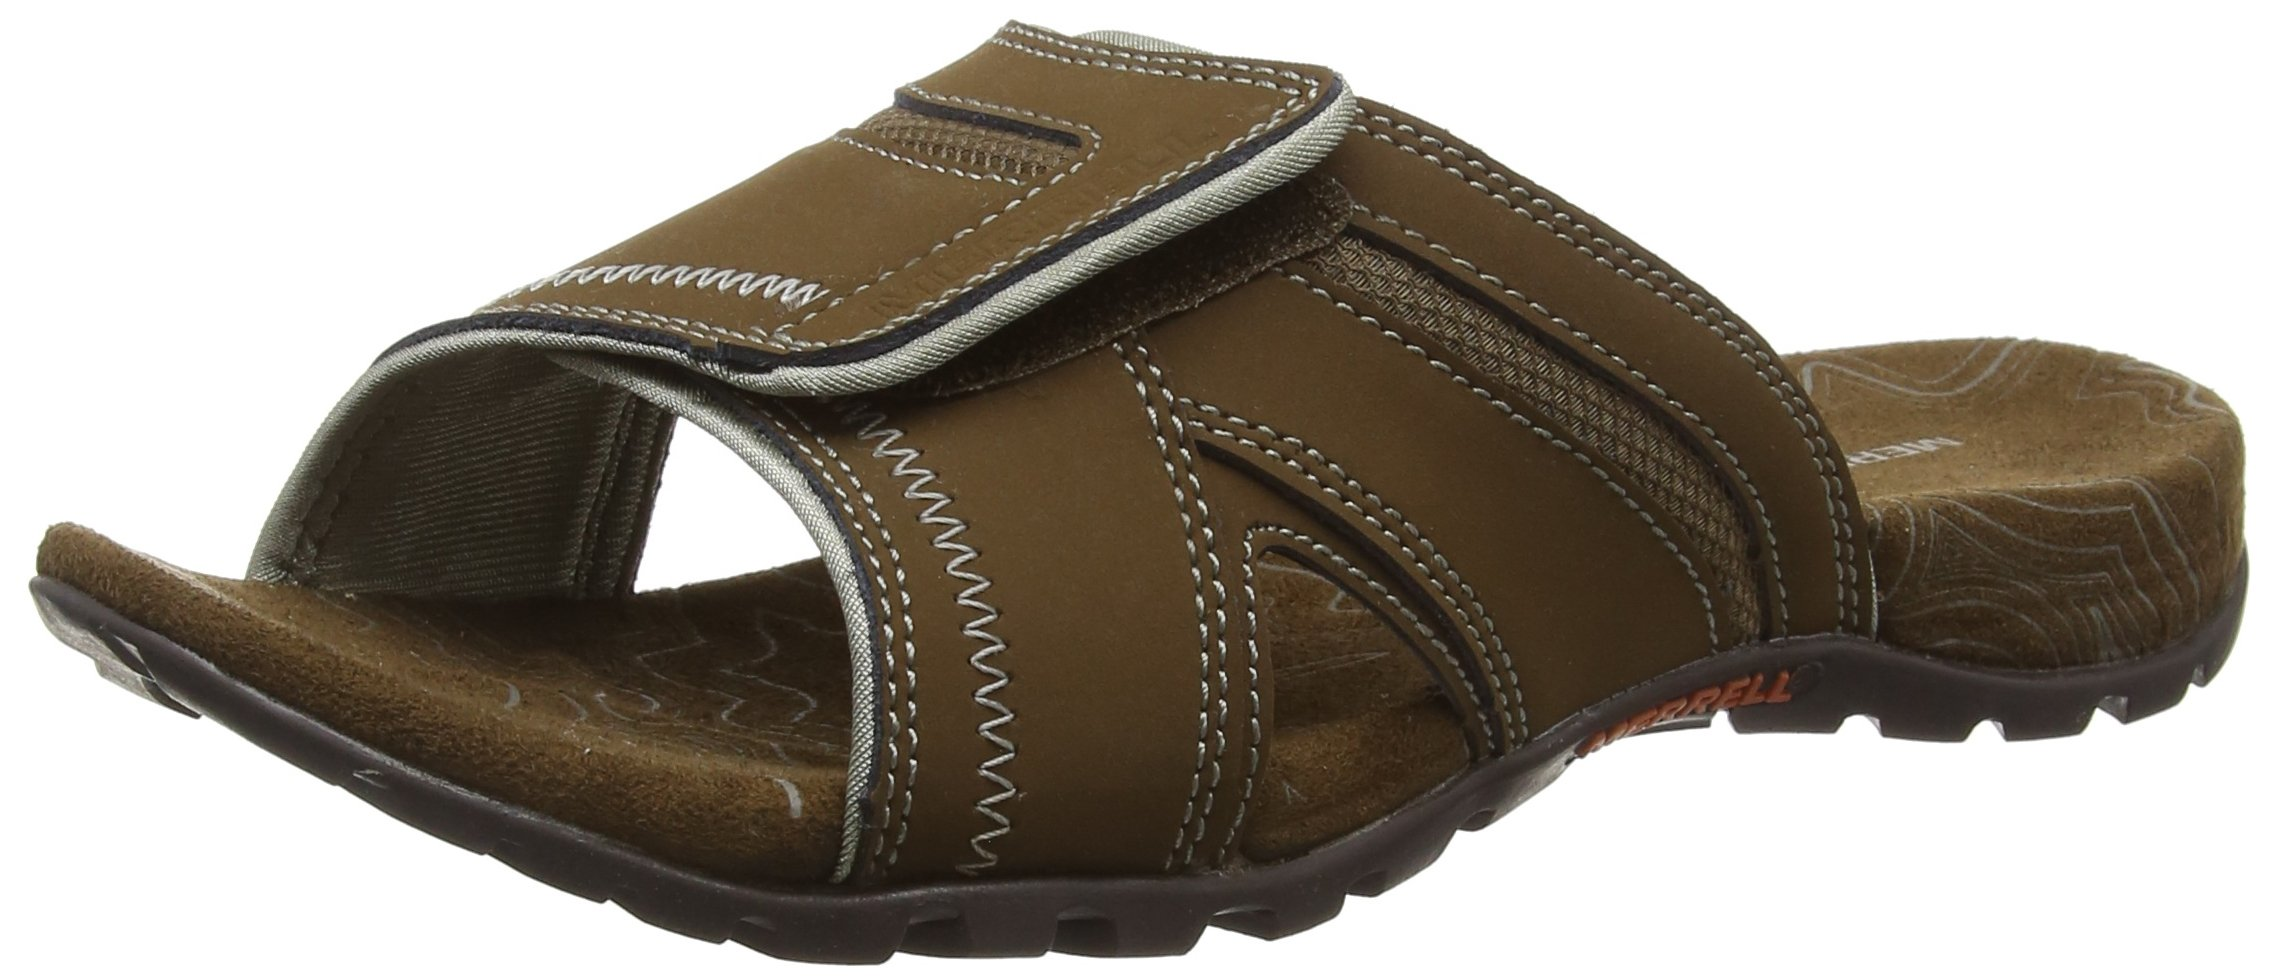 Earth Bout Merrell Homme Sandspur Sandales Clay 46 Ouvert Eu potting Pine Dark QCxWredBo